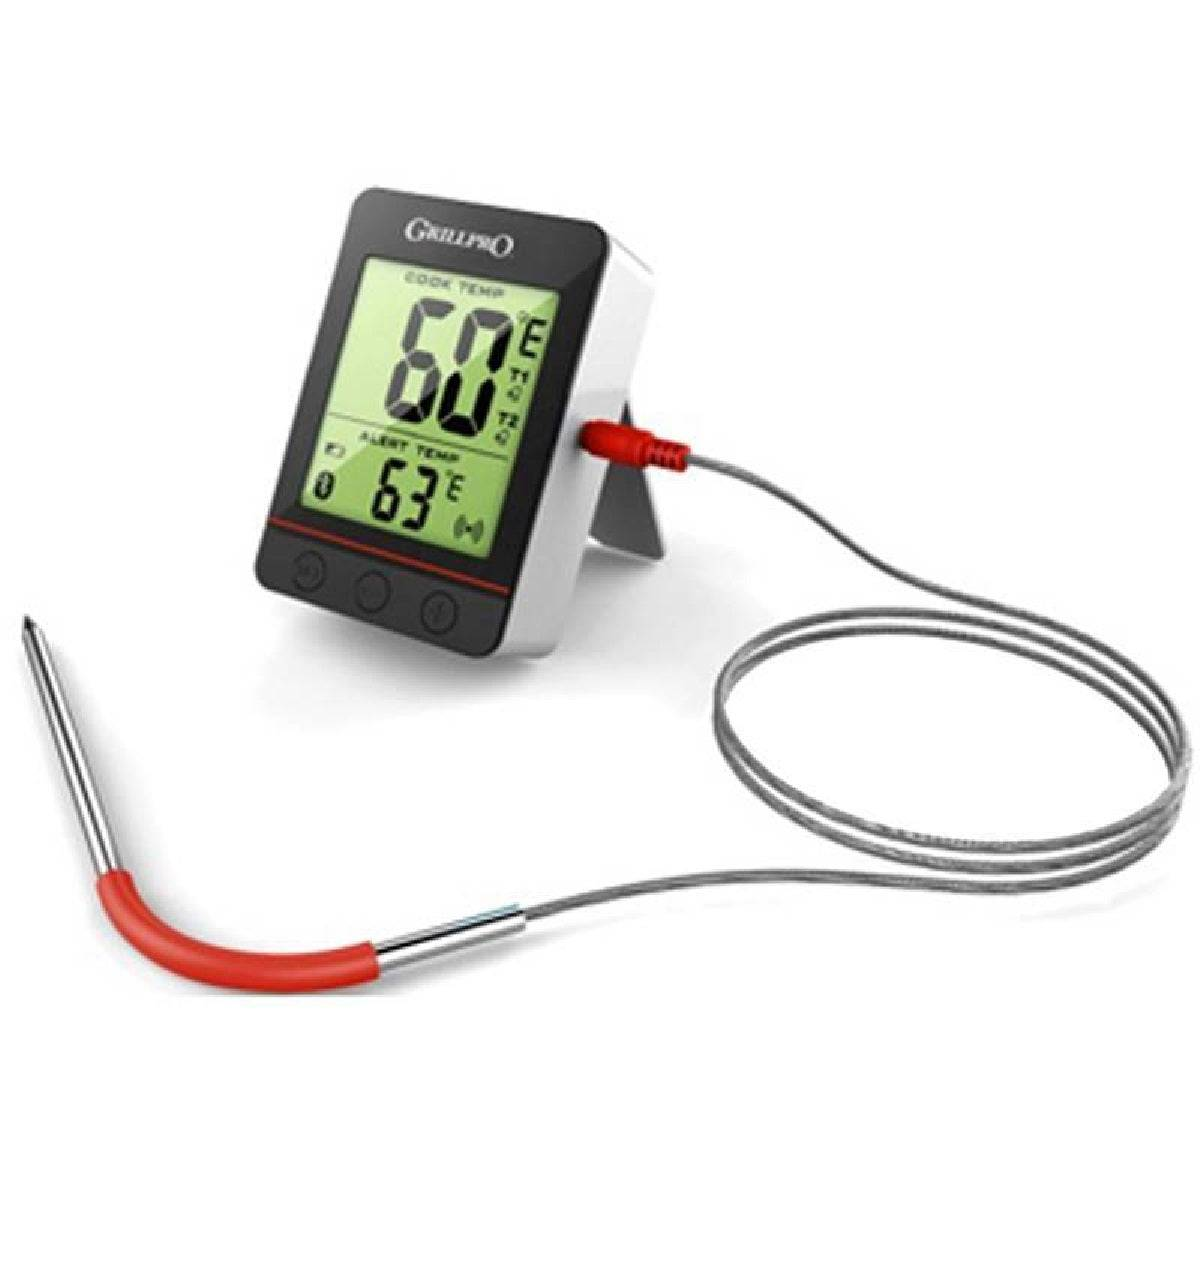 Grill Pro Grillpro 13975 Bluetooth Thermometer